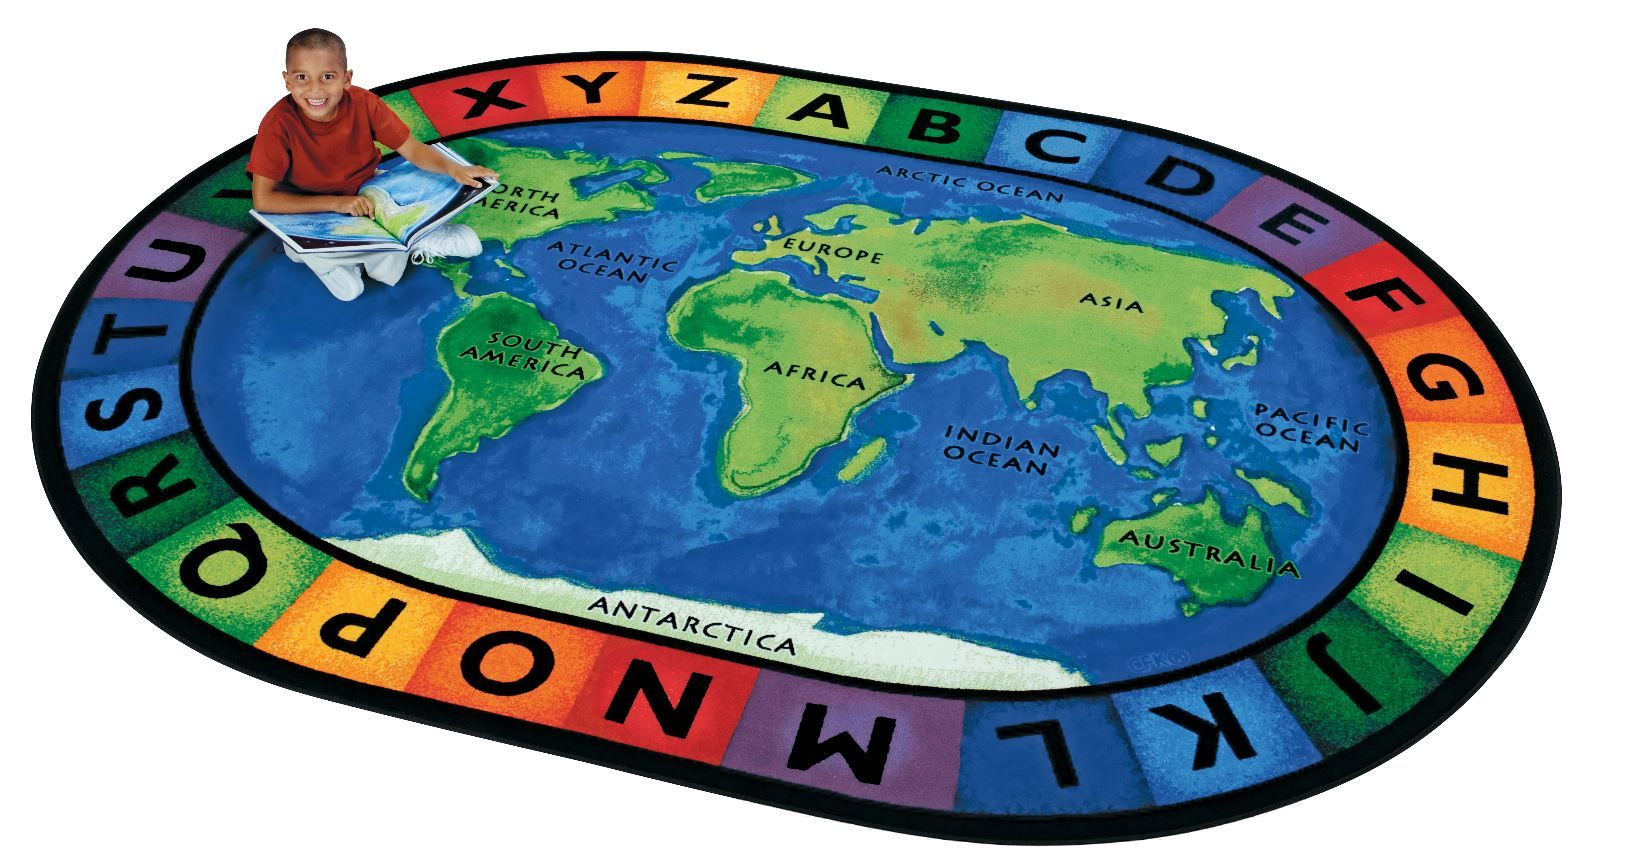 Circletime around the world rug educational carpets seating rugs the around the world map classroom rug features the oceans and continents plus the alphabet the ultimate learning rug for circle time or anytime gumiabroncs Image collections